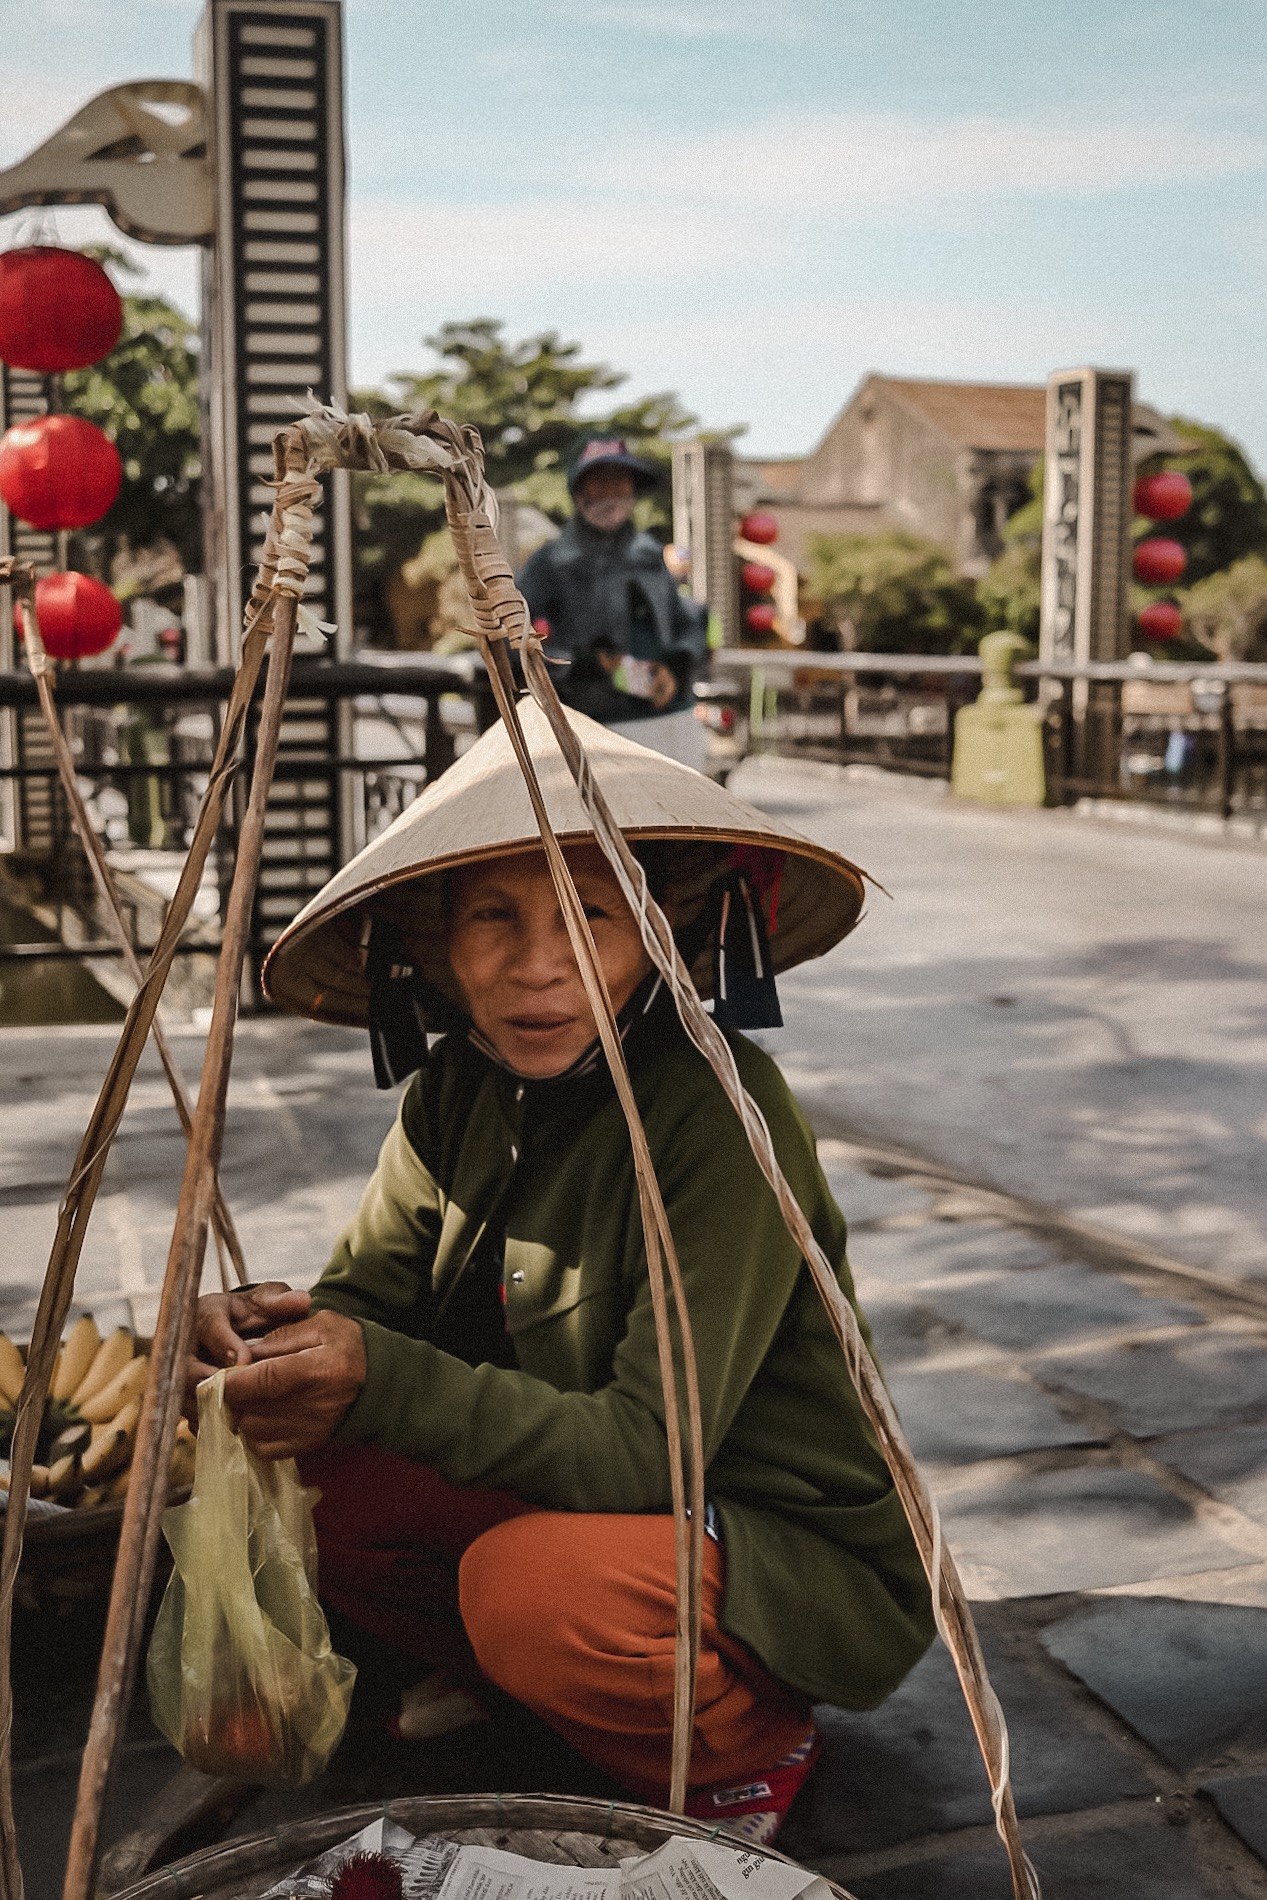 Illustrated by Sade - Elderly Vietamese Woman Selling Fruit on the Streets of Hoi An, Vietnam